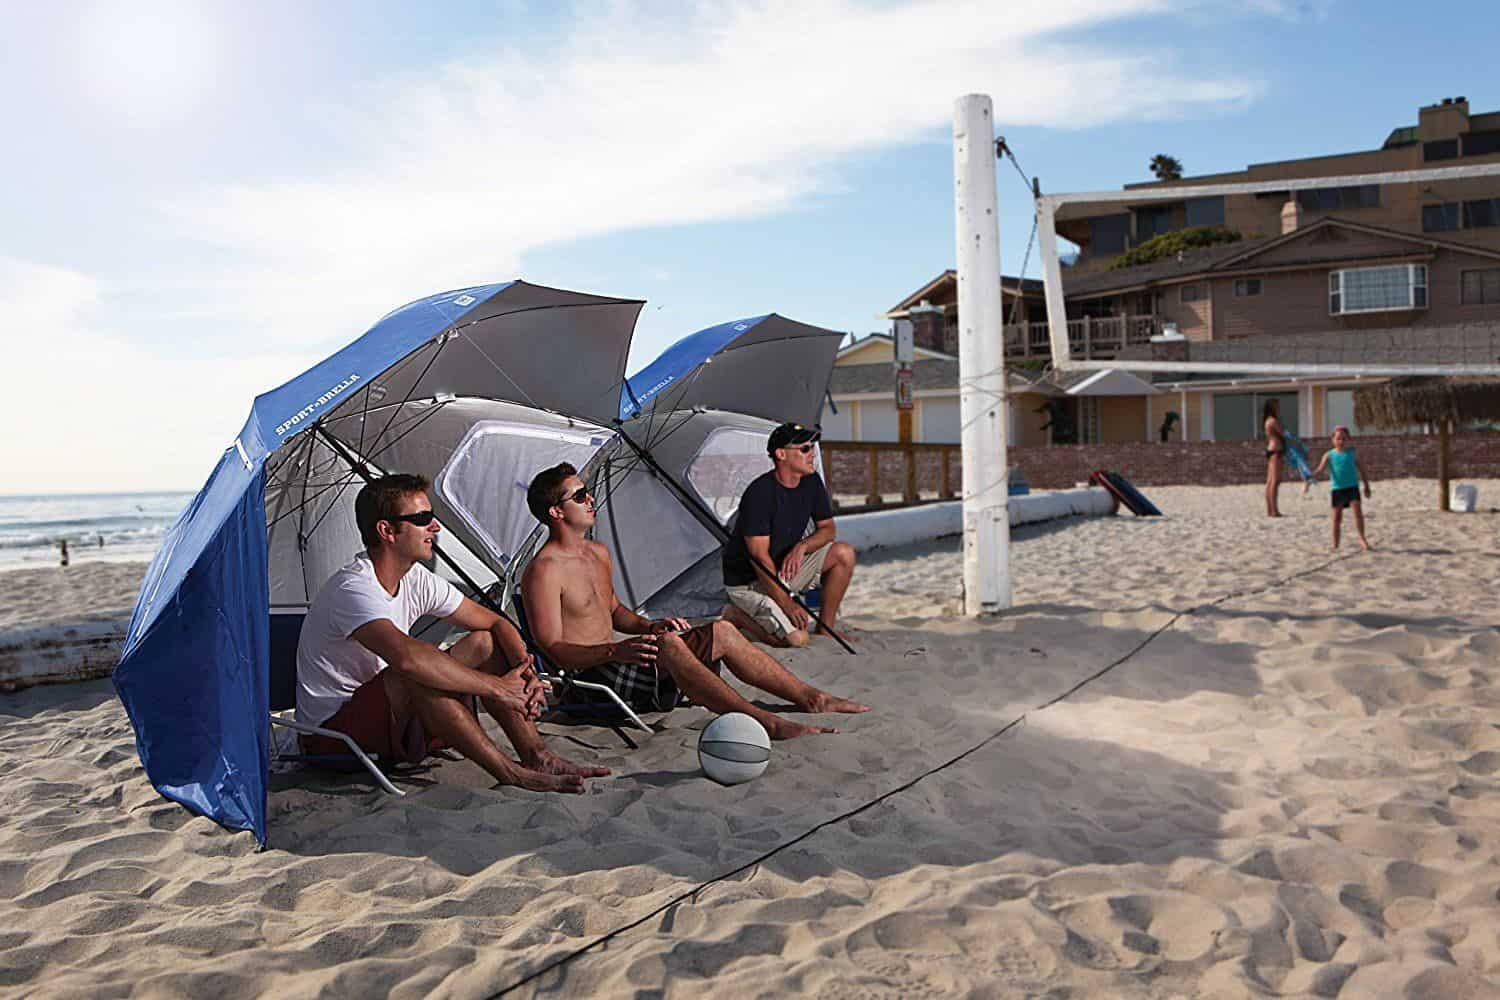 The Sport-Brella Beach Shade is great for providing shade for all types of events.